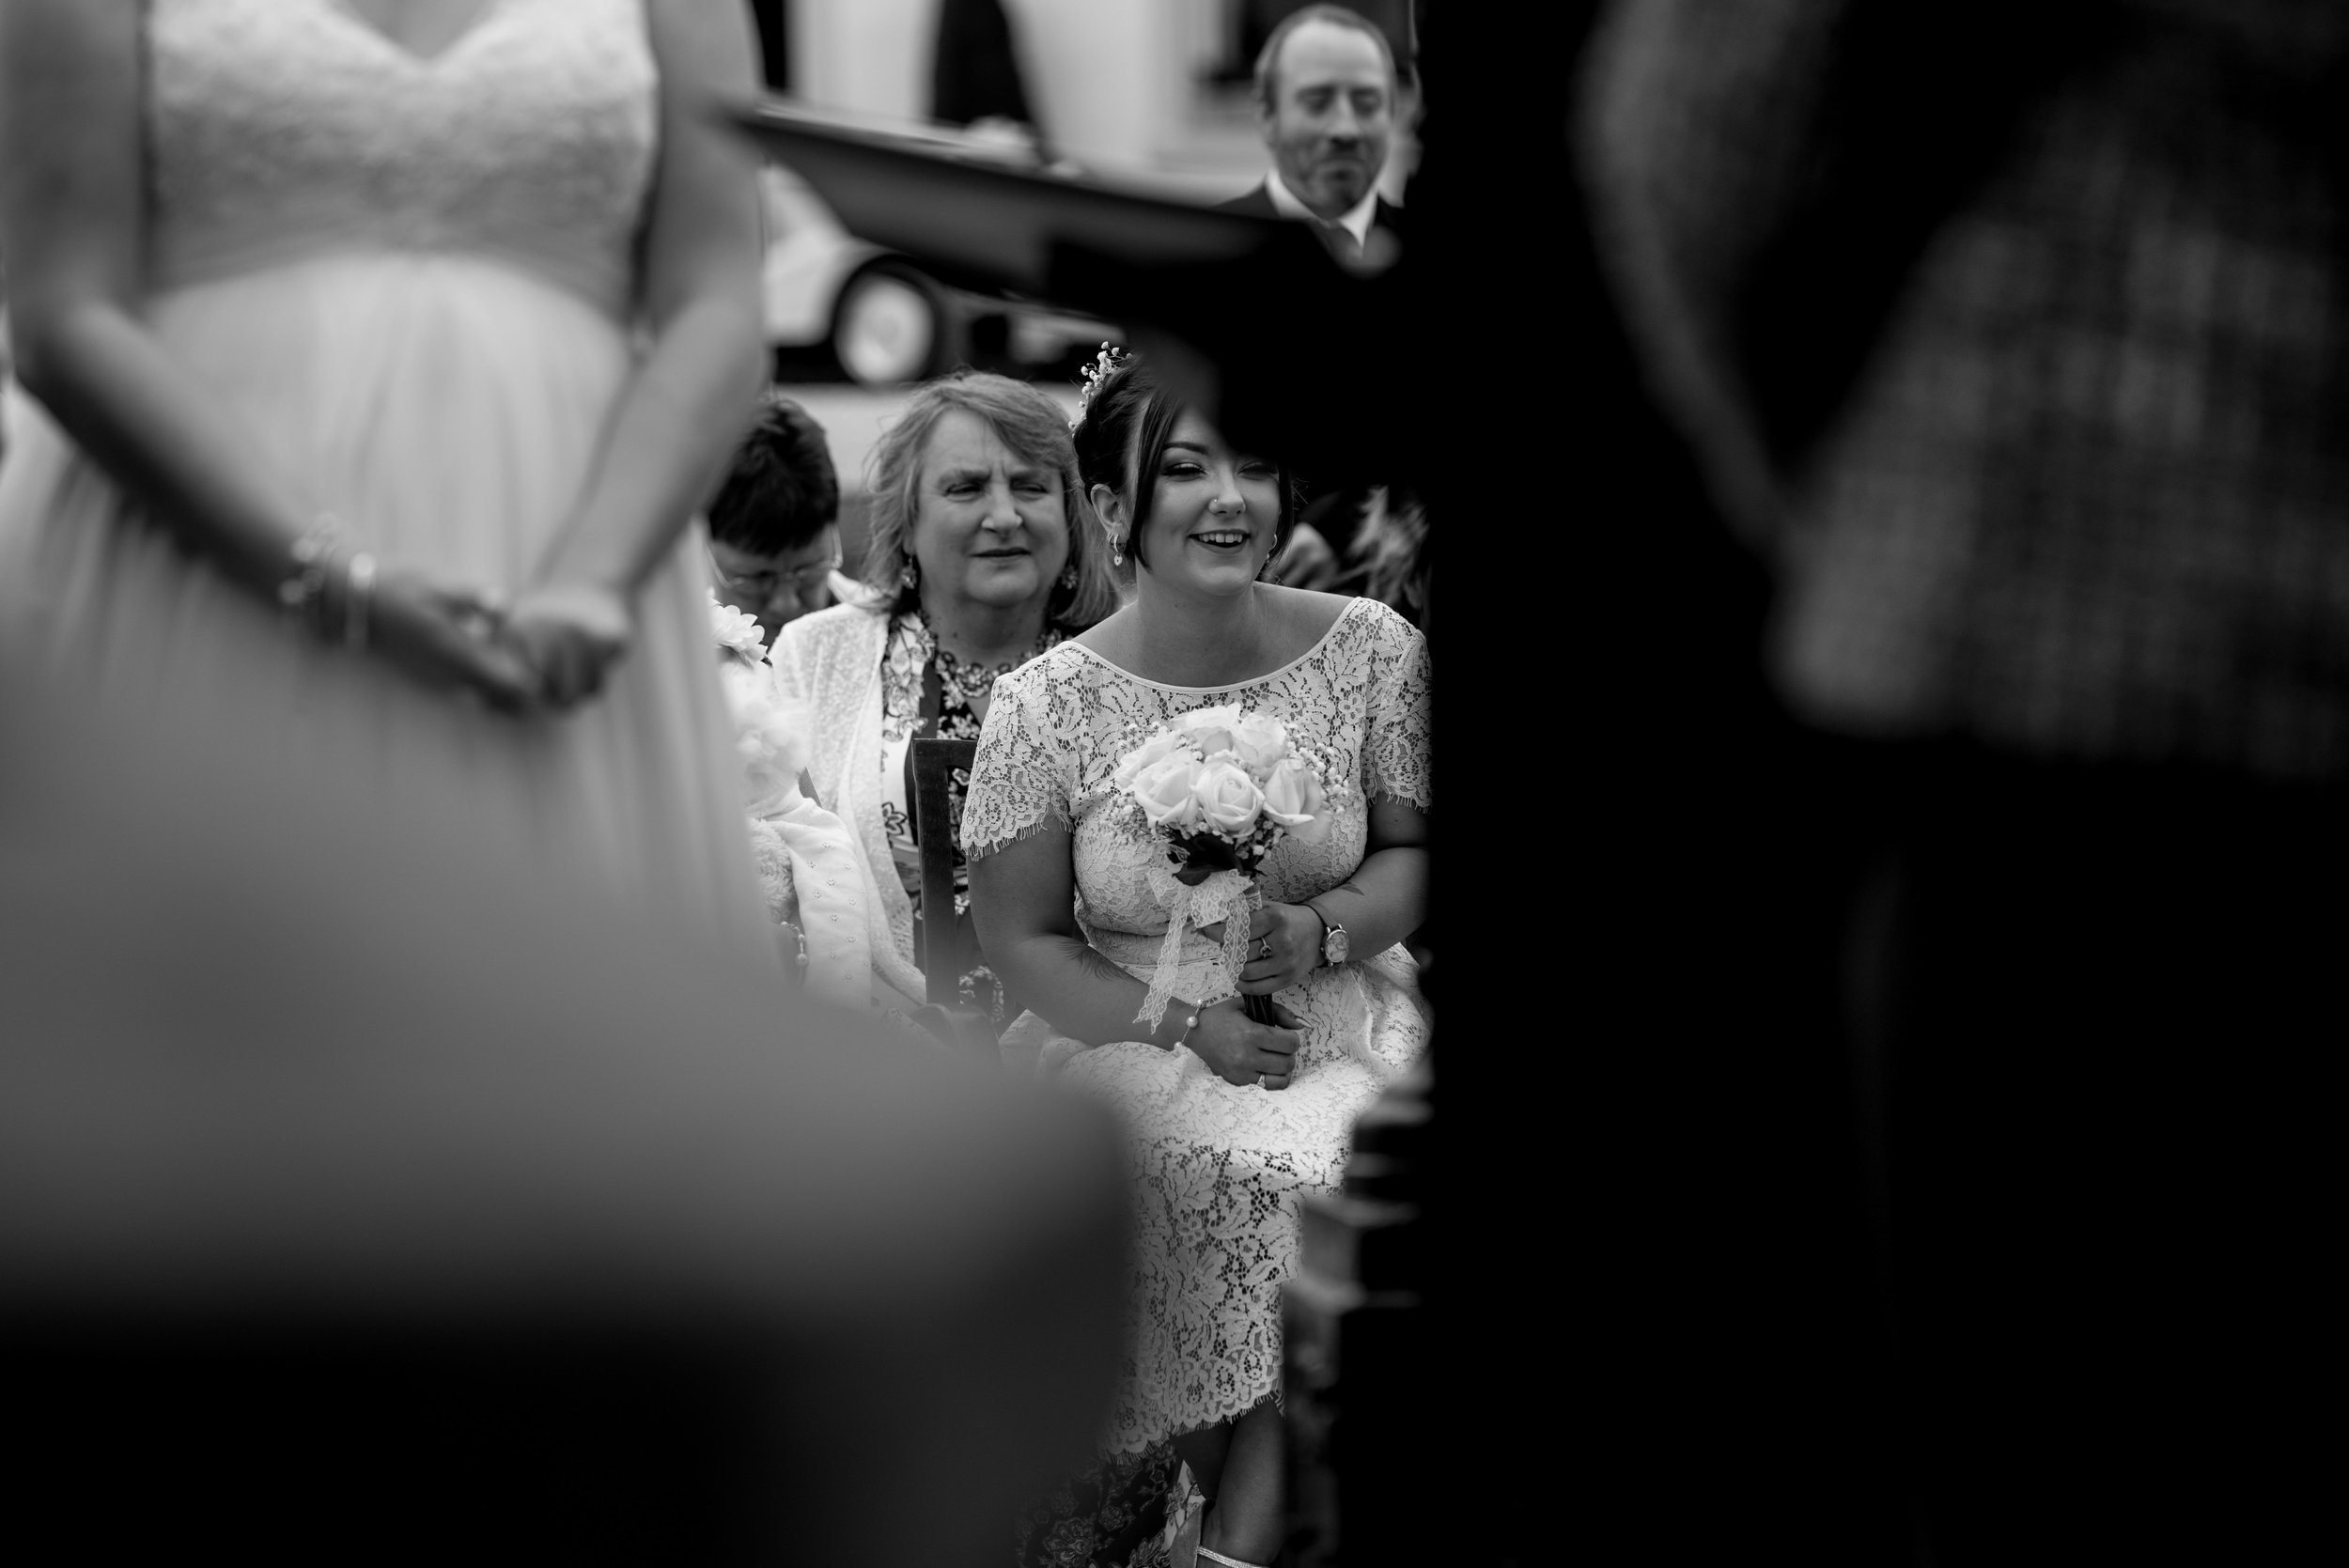 A bridesmaid sits smiling as the bride and groom exchange their vows